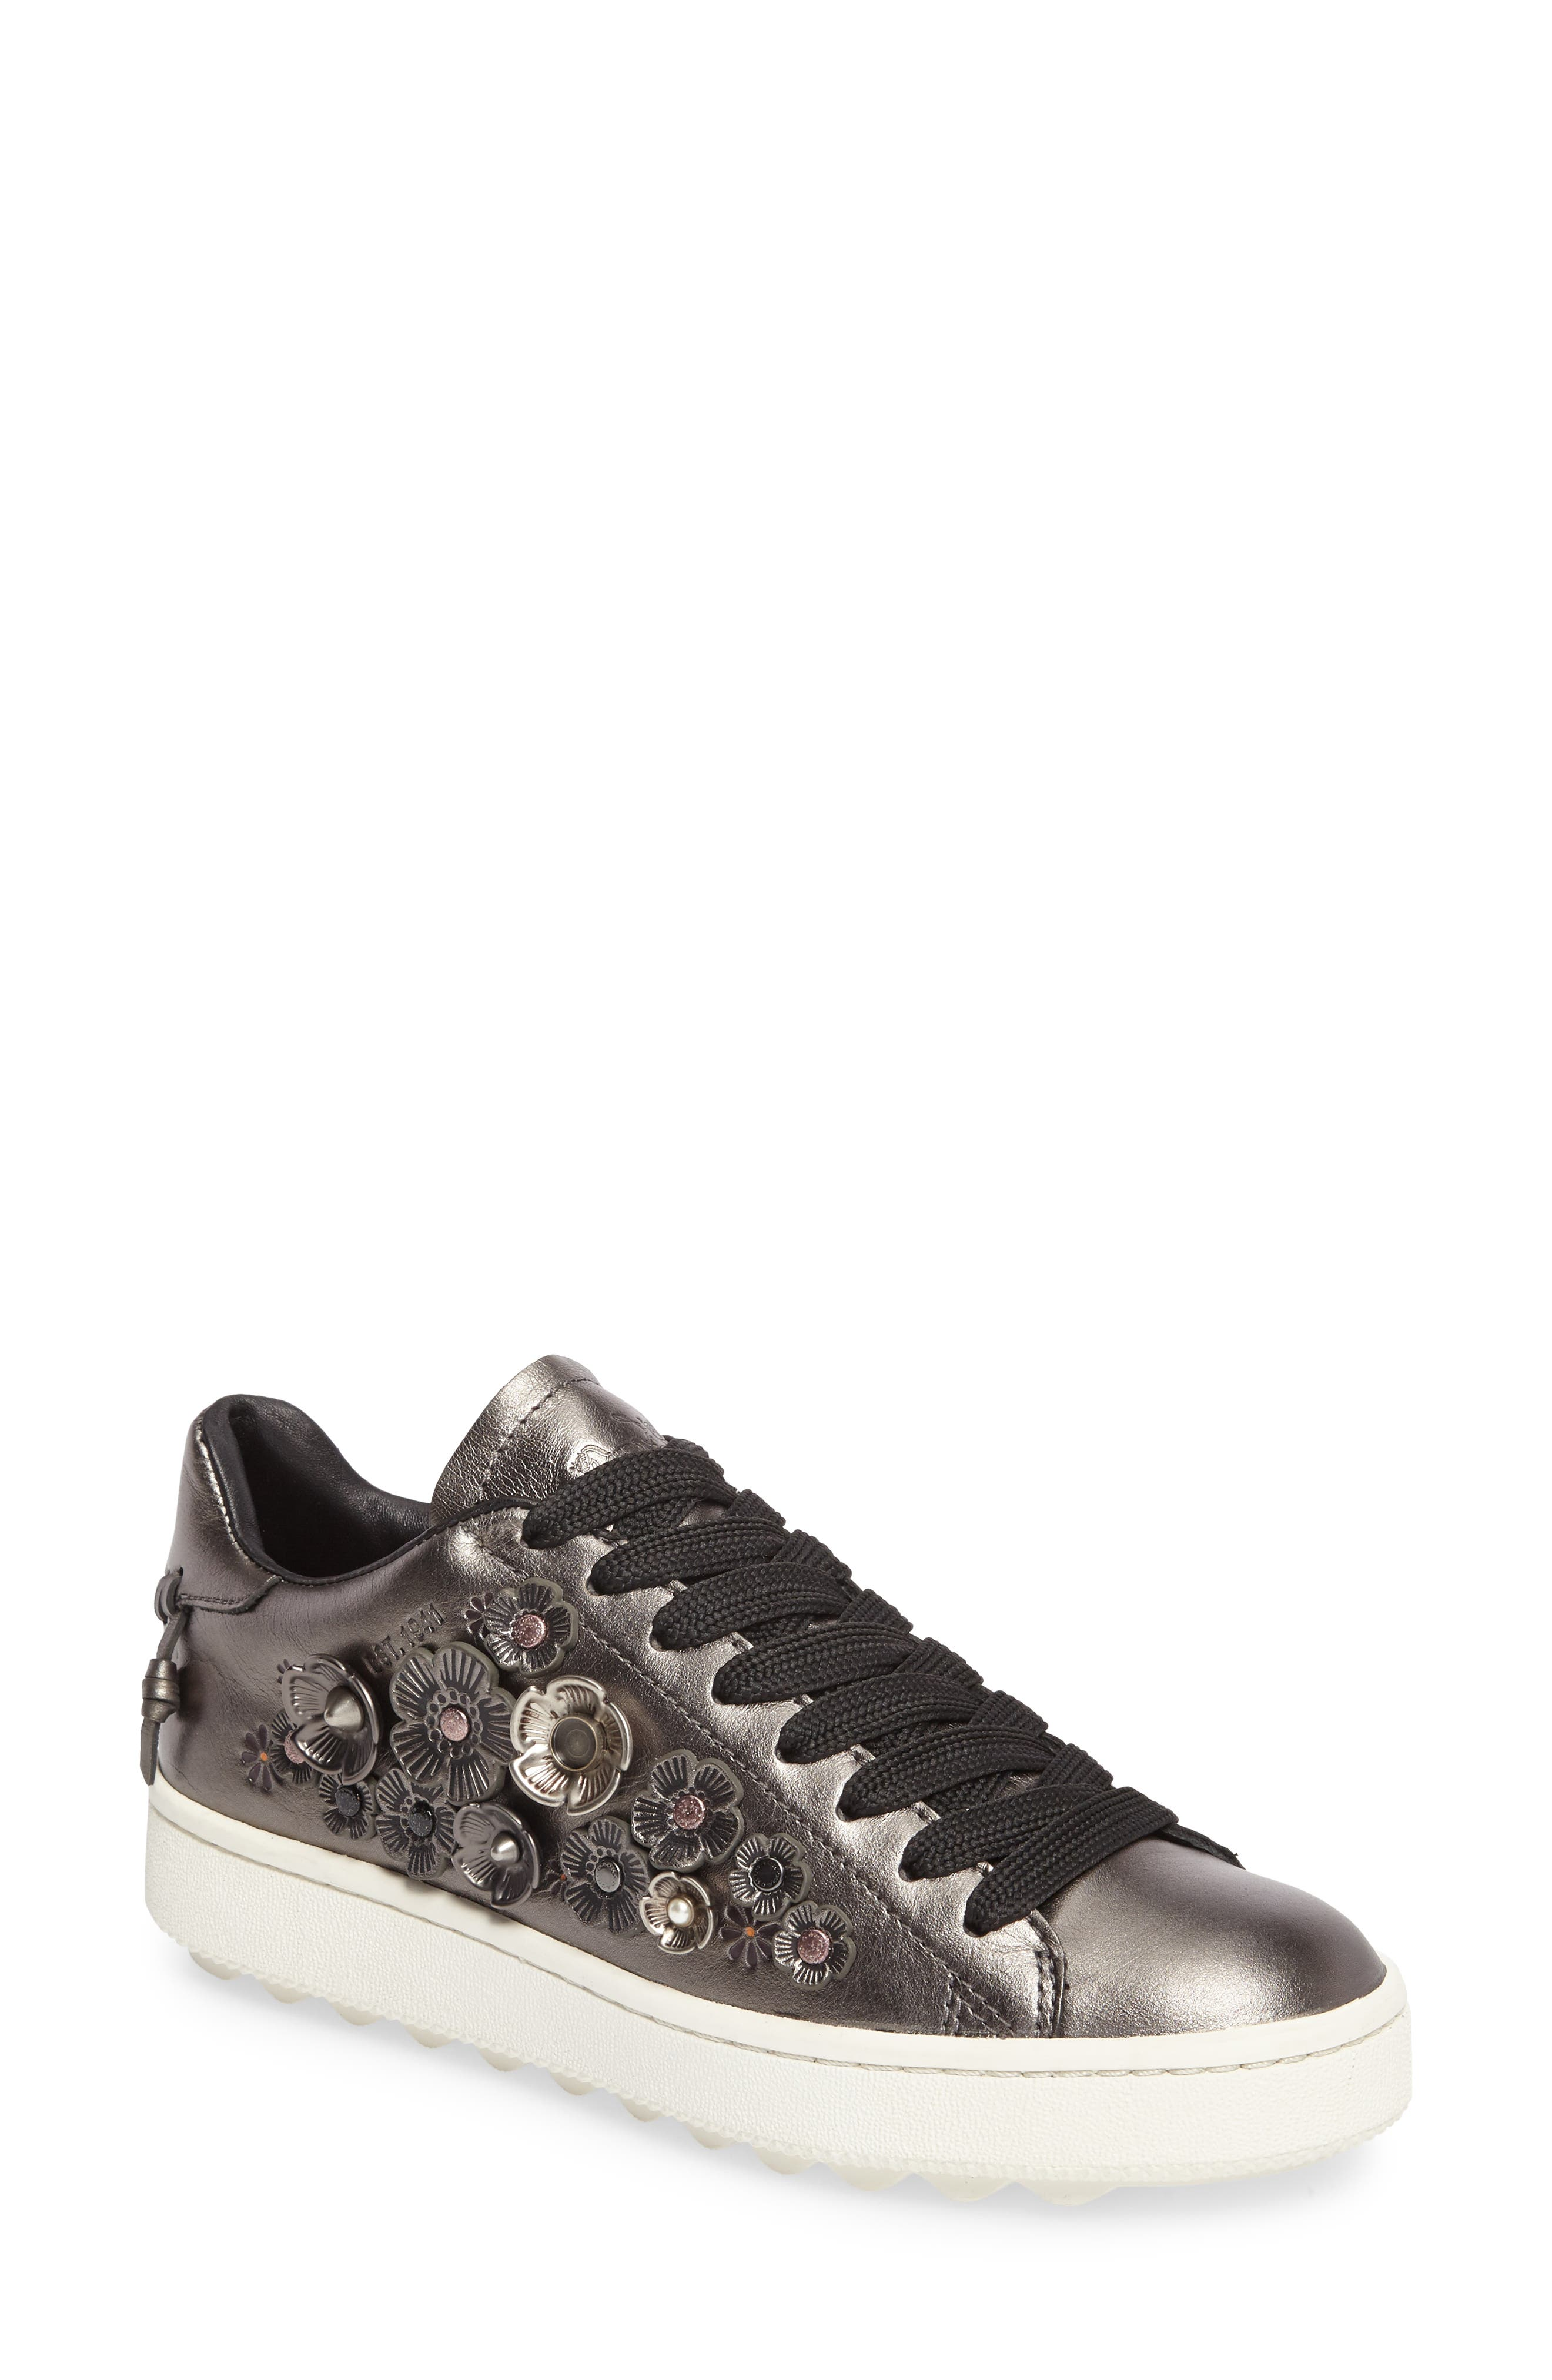 Tea Rose Metallic Sneaker,                             Main thumbnail 1, color,                             Gunmetal Leather